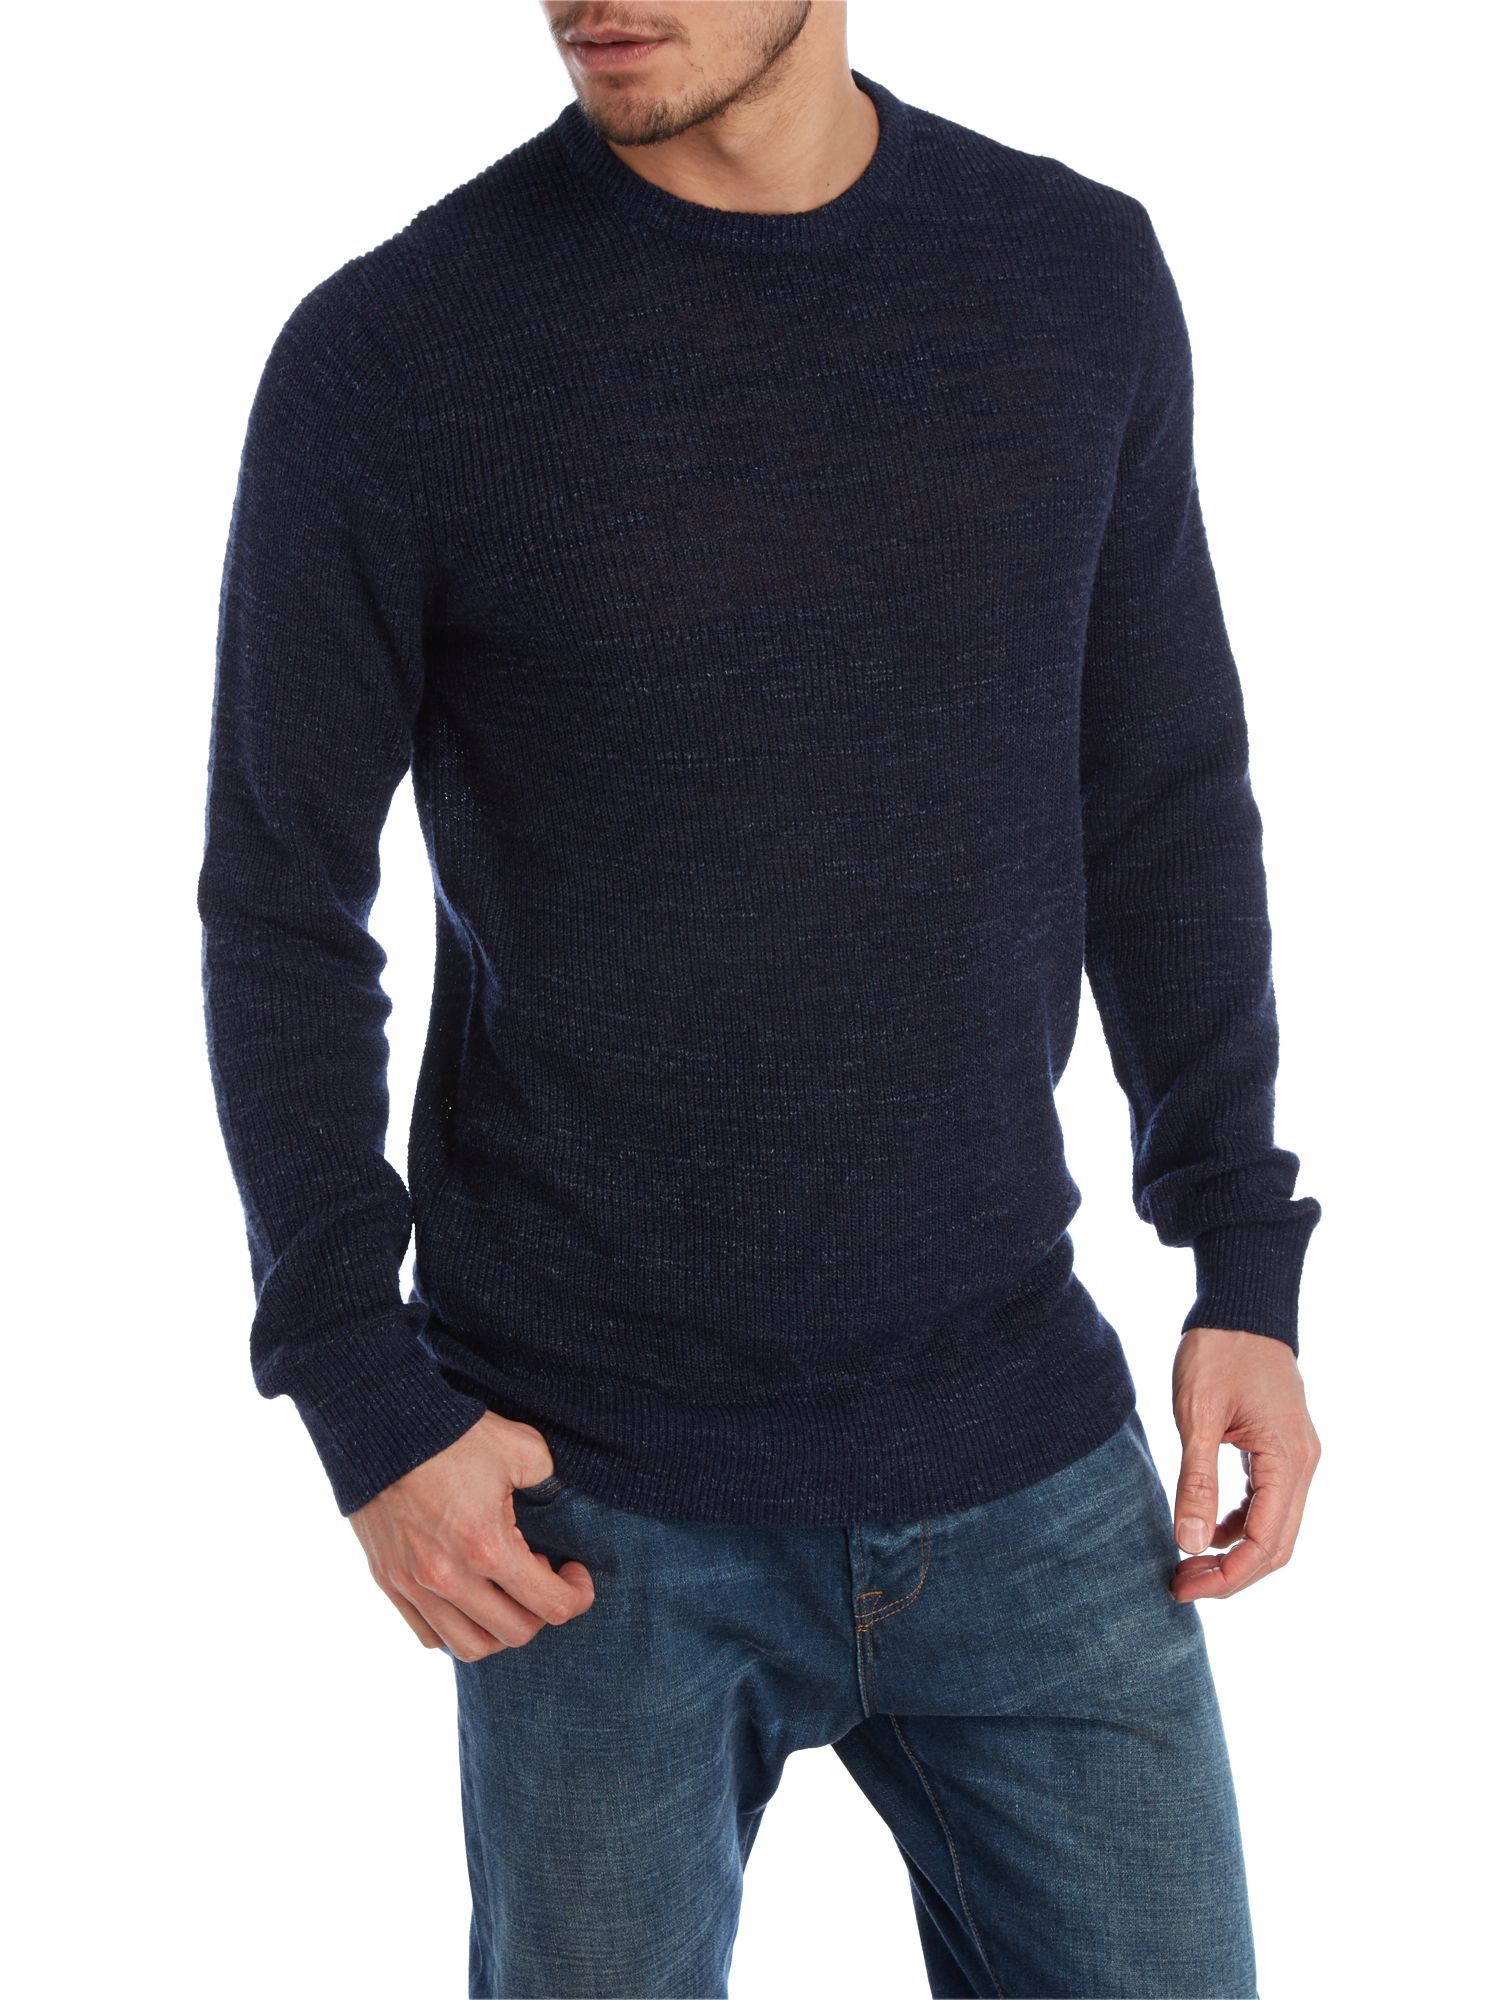 Loose crew neck knitwear